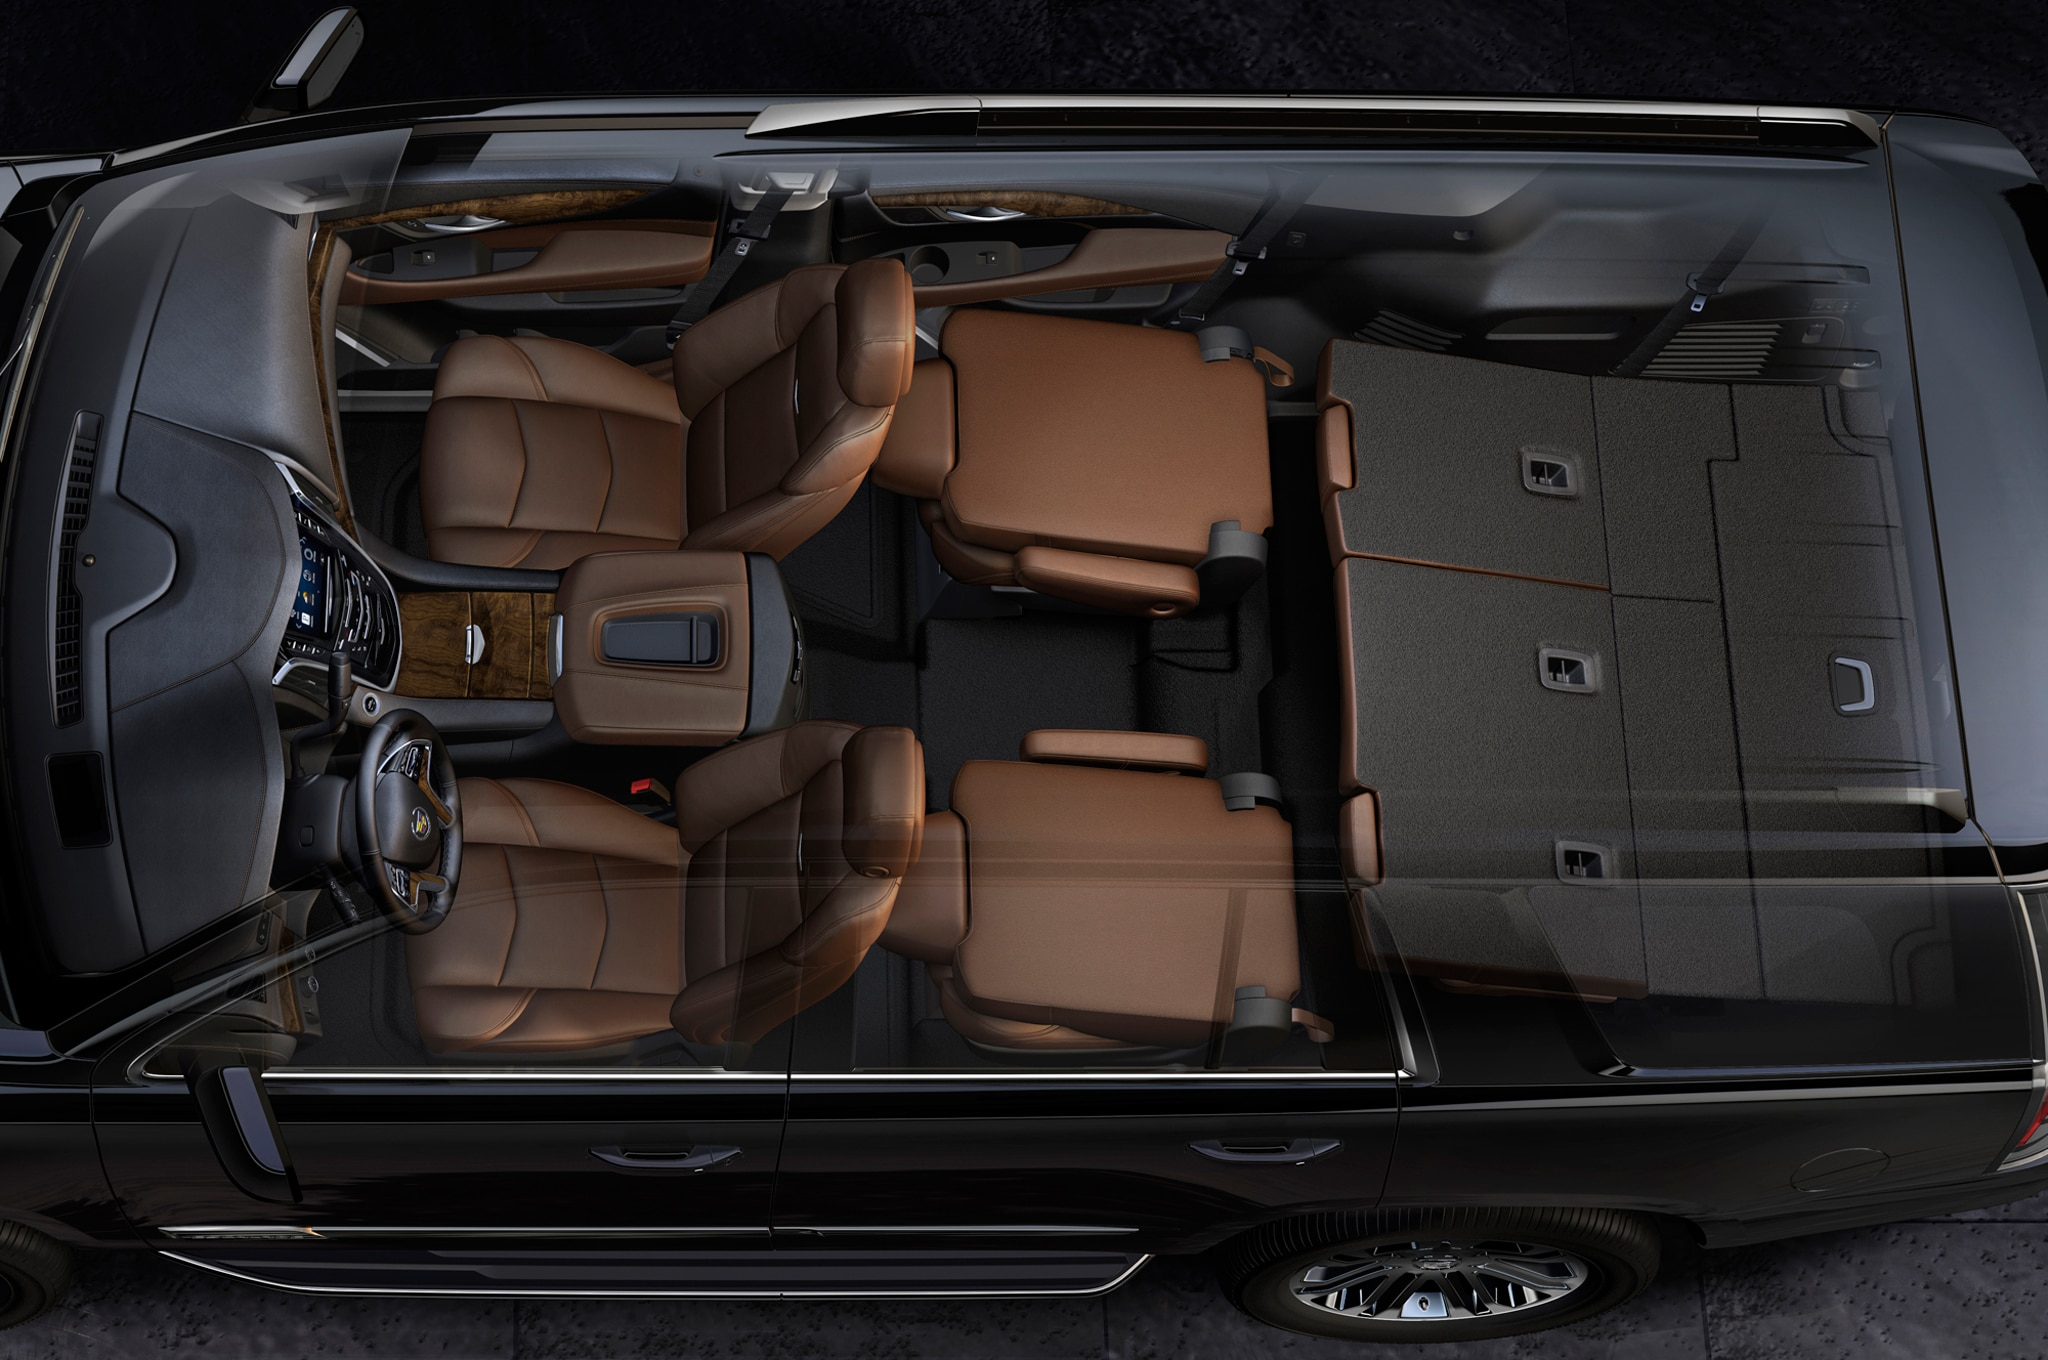 2015 Cadillac Escalade interior view 02